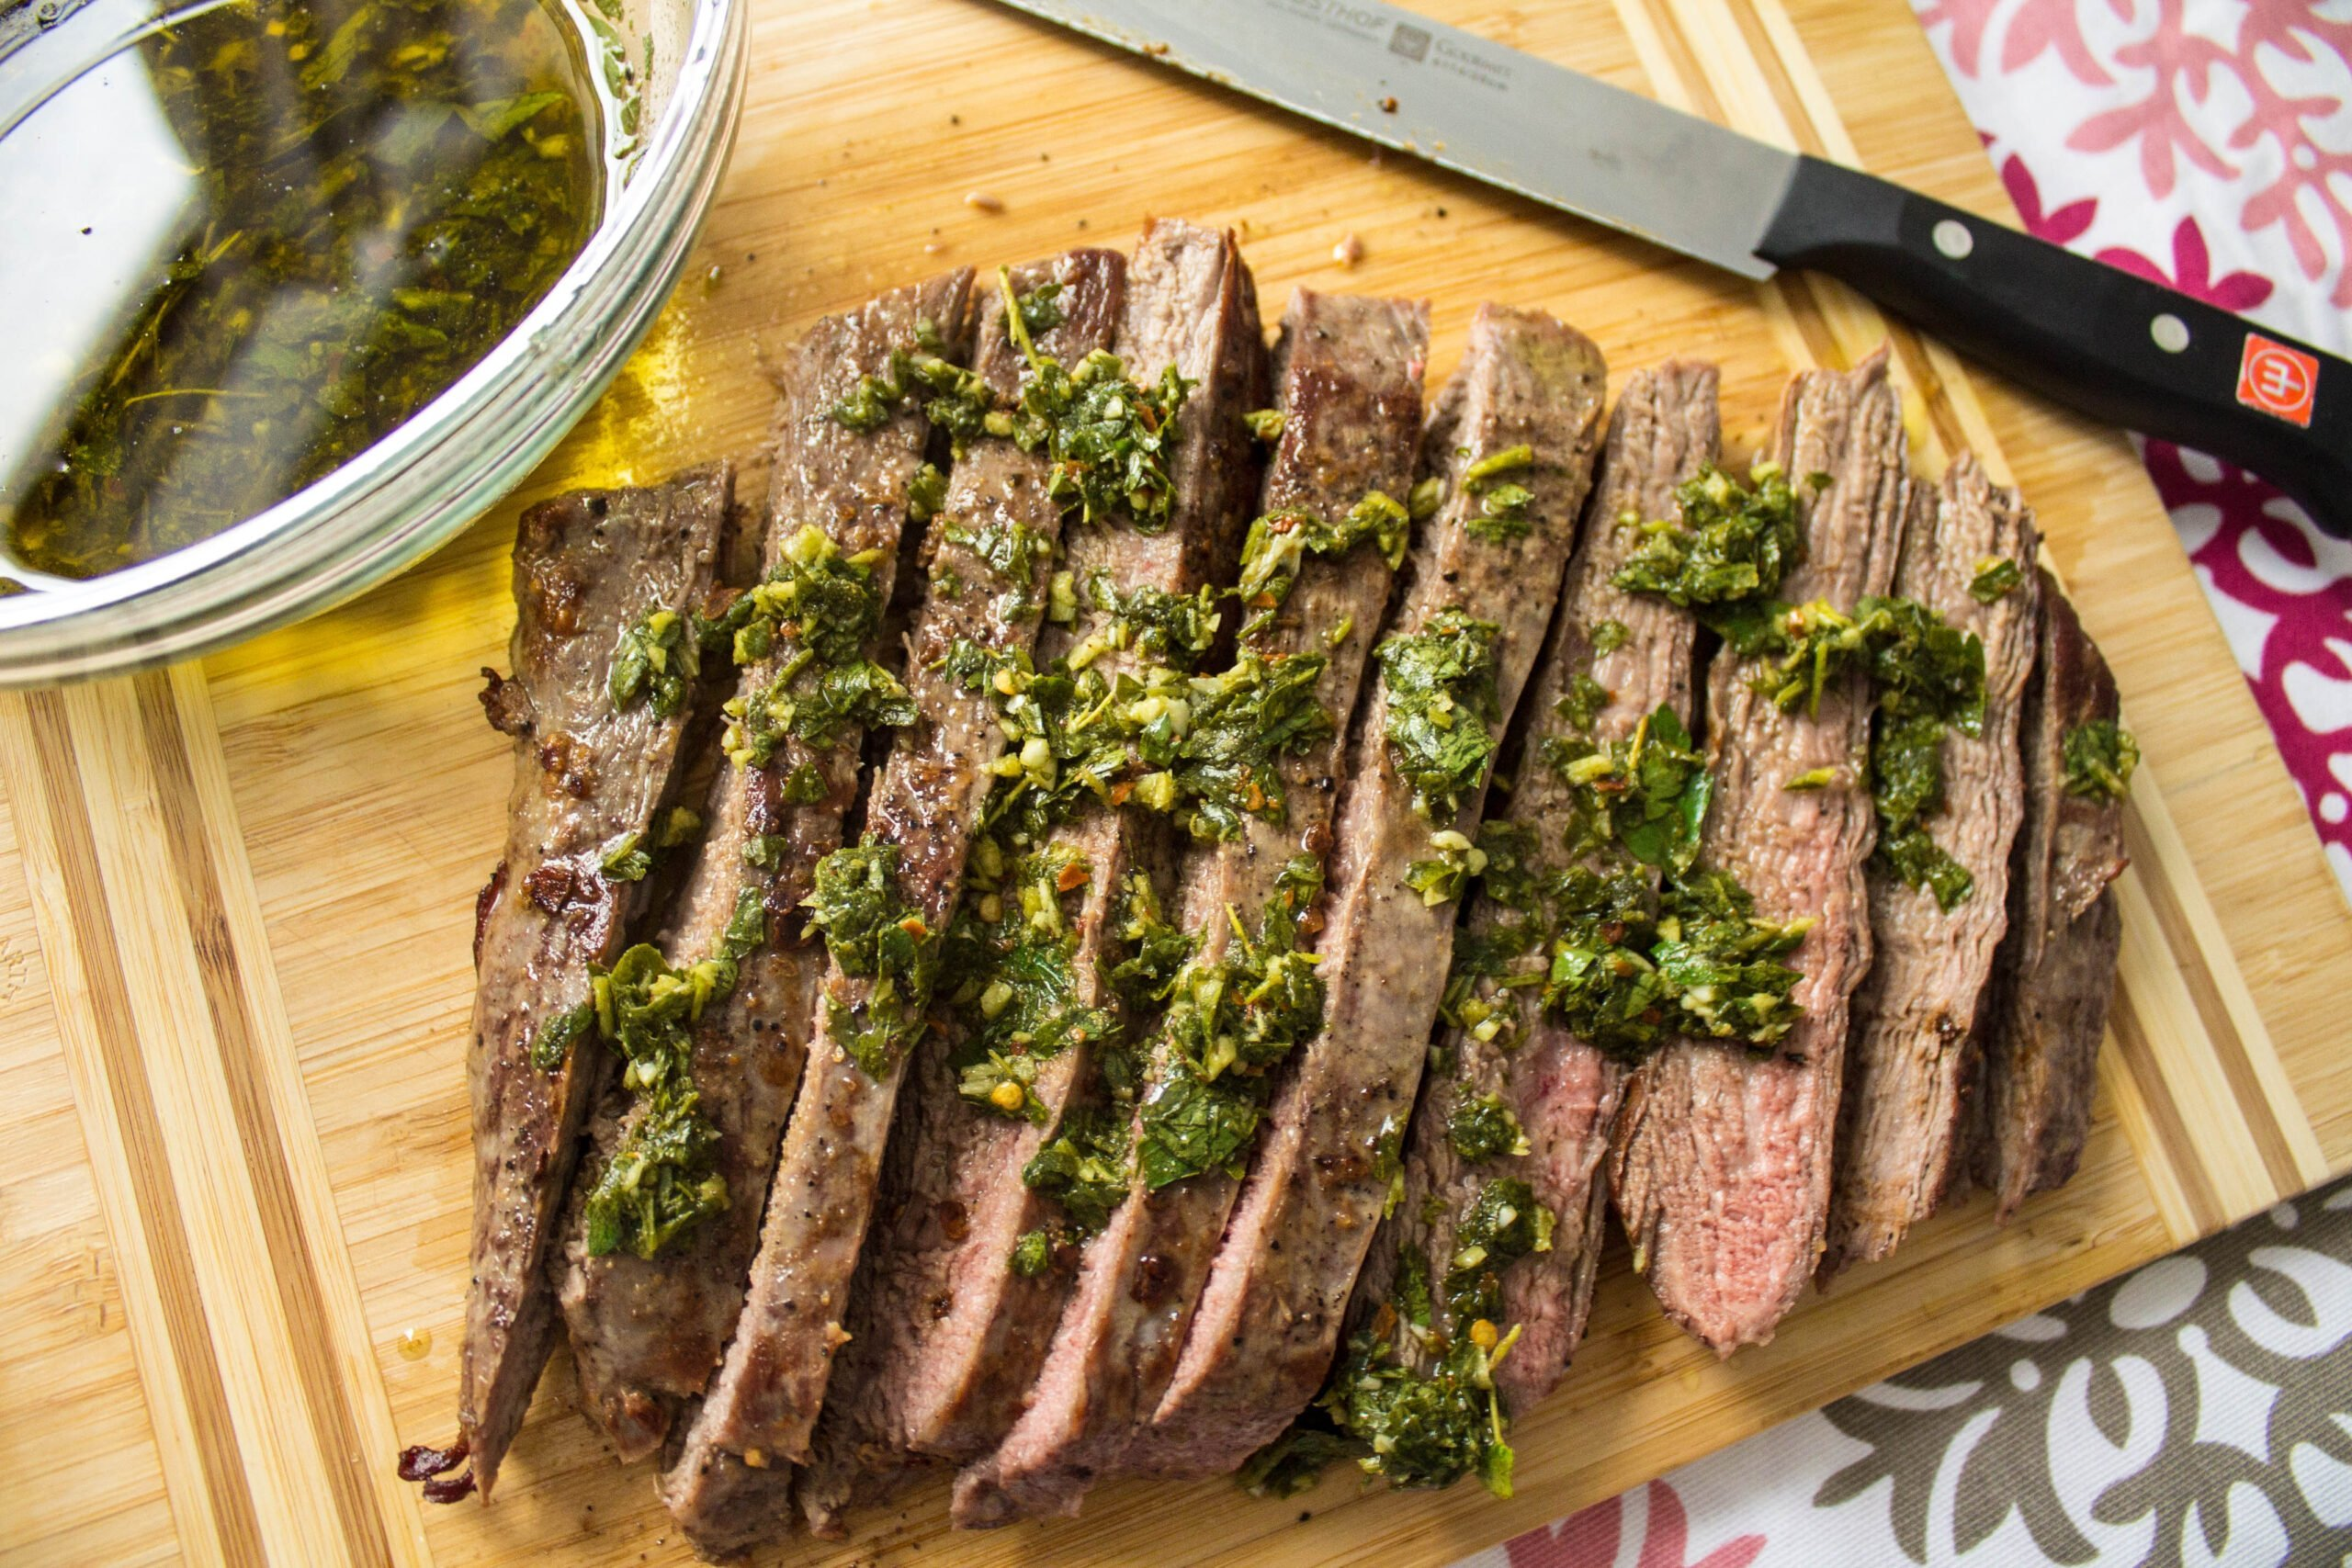 The World Cup Gourmet Series – Argentina: Grilled Flank Steak with Chimichurri Sauce